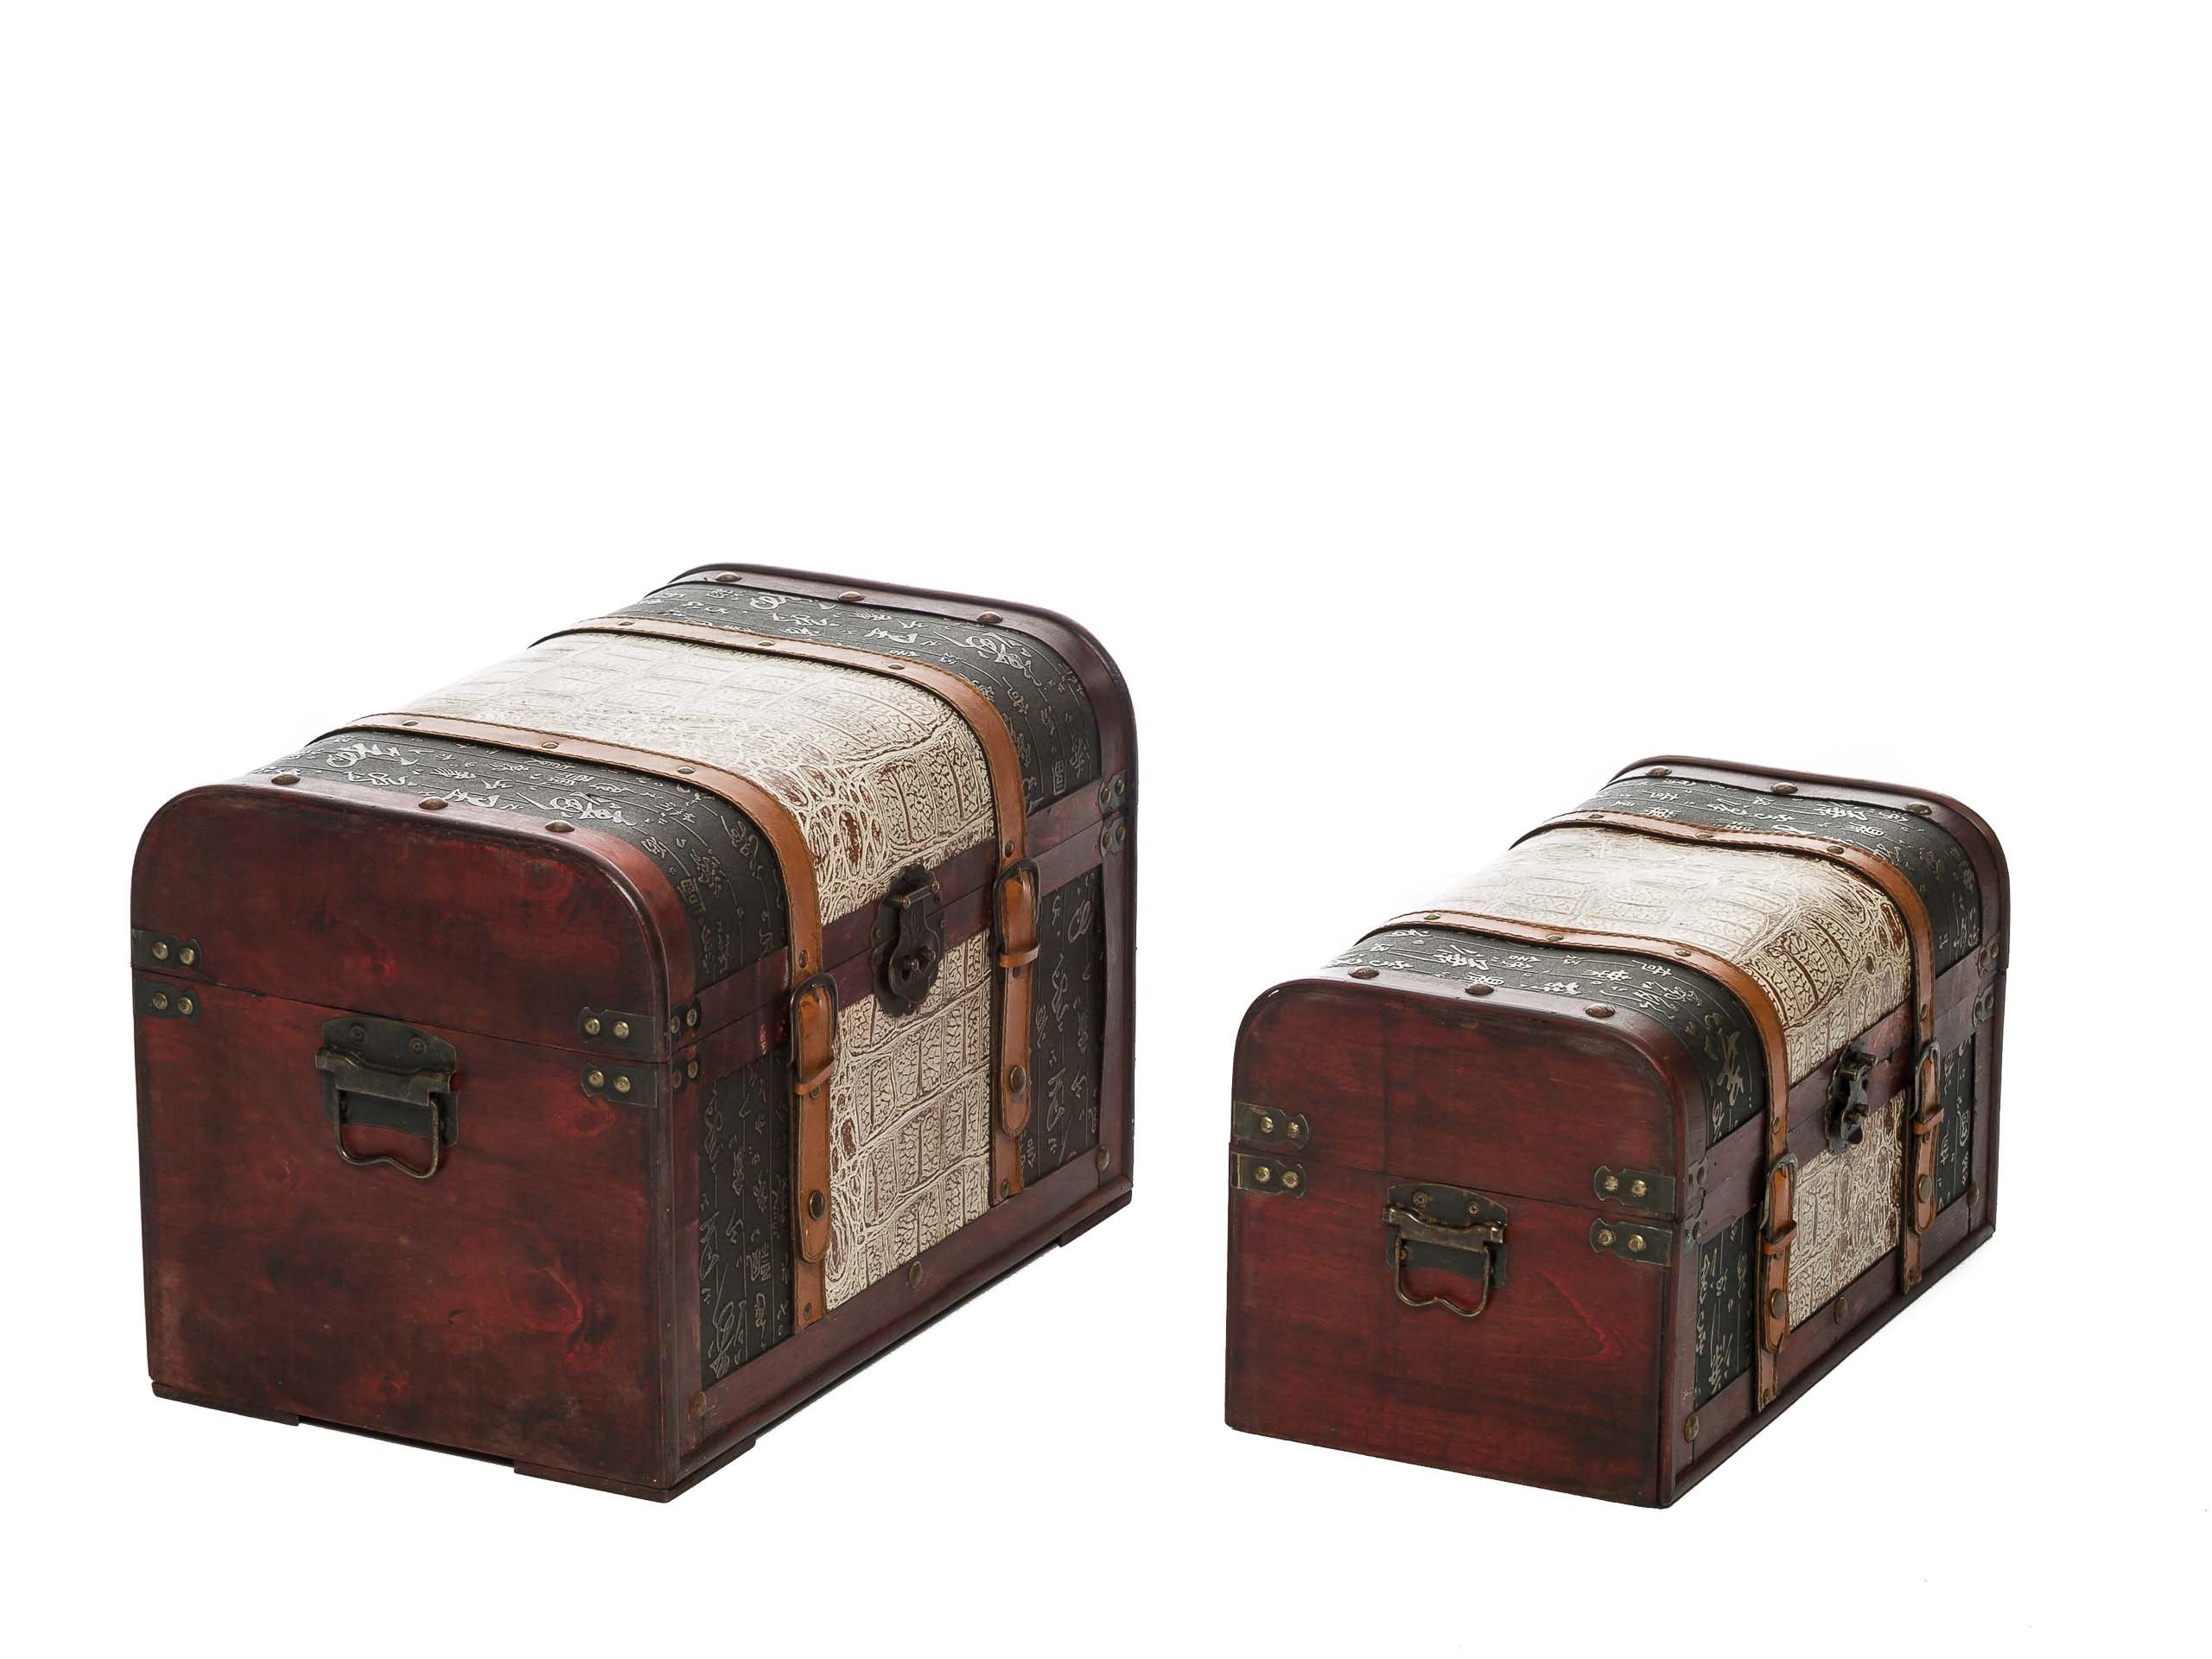 Truhe Aufbewahrung Set Of 2 Beautiful Chests Vintage Style Set Wood